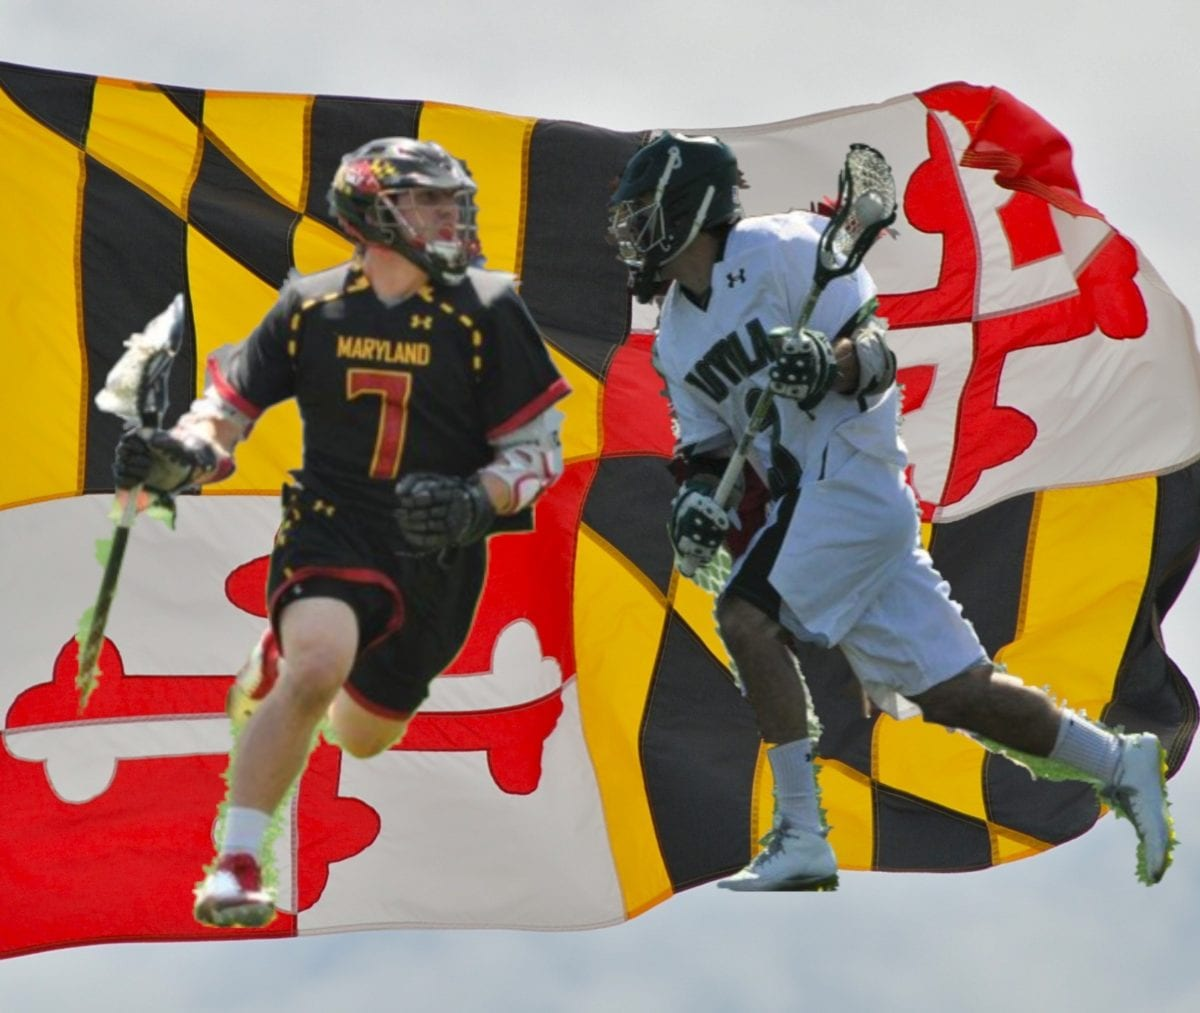 loyola vs maryland flag lacrosse